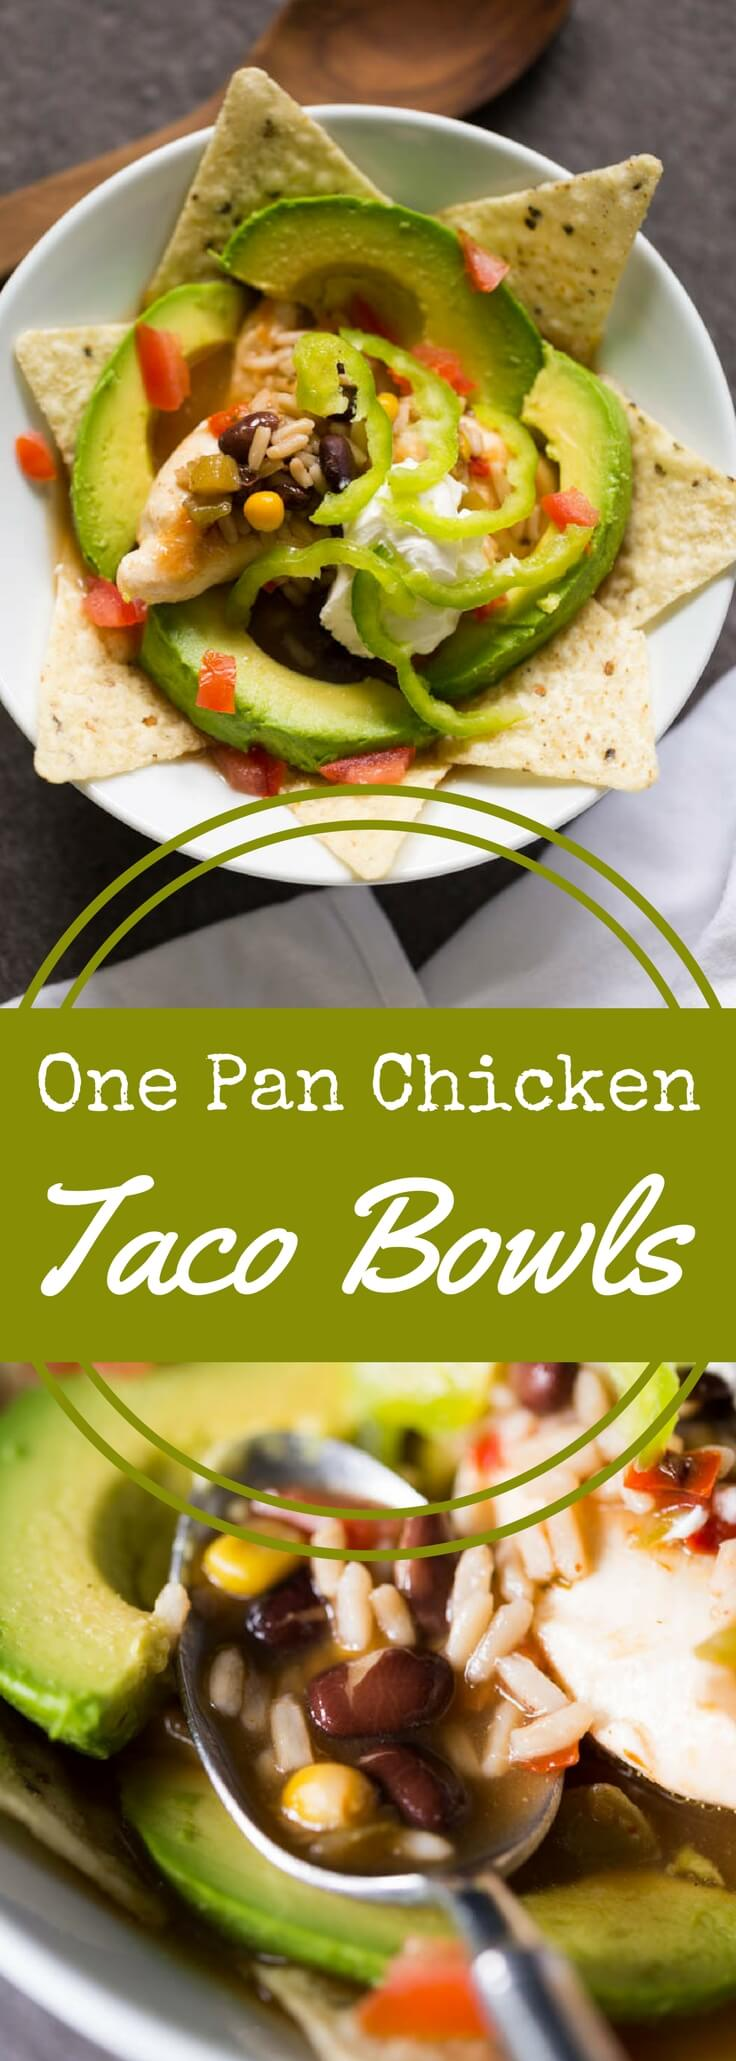 Make chicken taco bowls quickly in one pan when you use this secret ingredient.  Top with your favorite taco fixings for a complete meal!